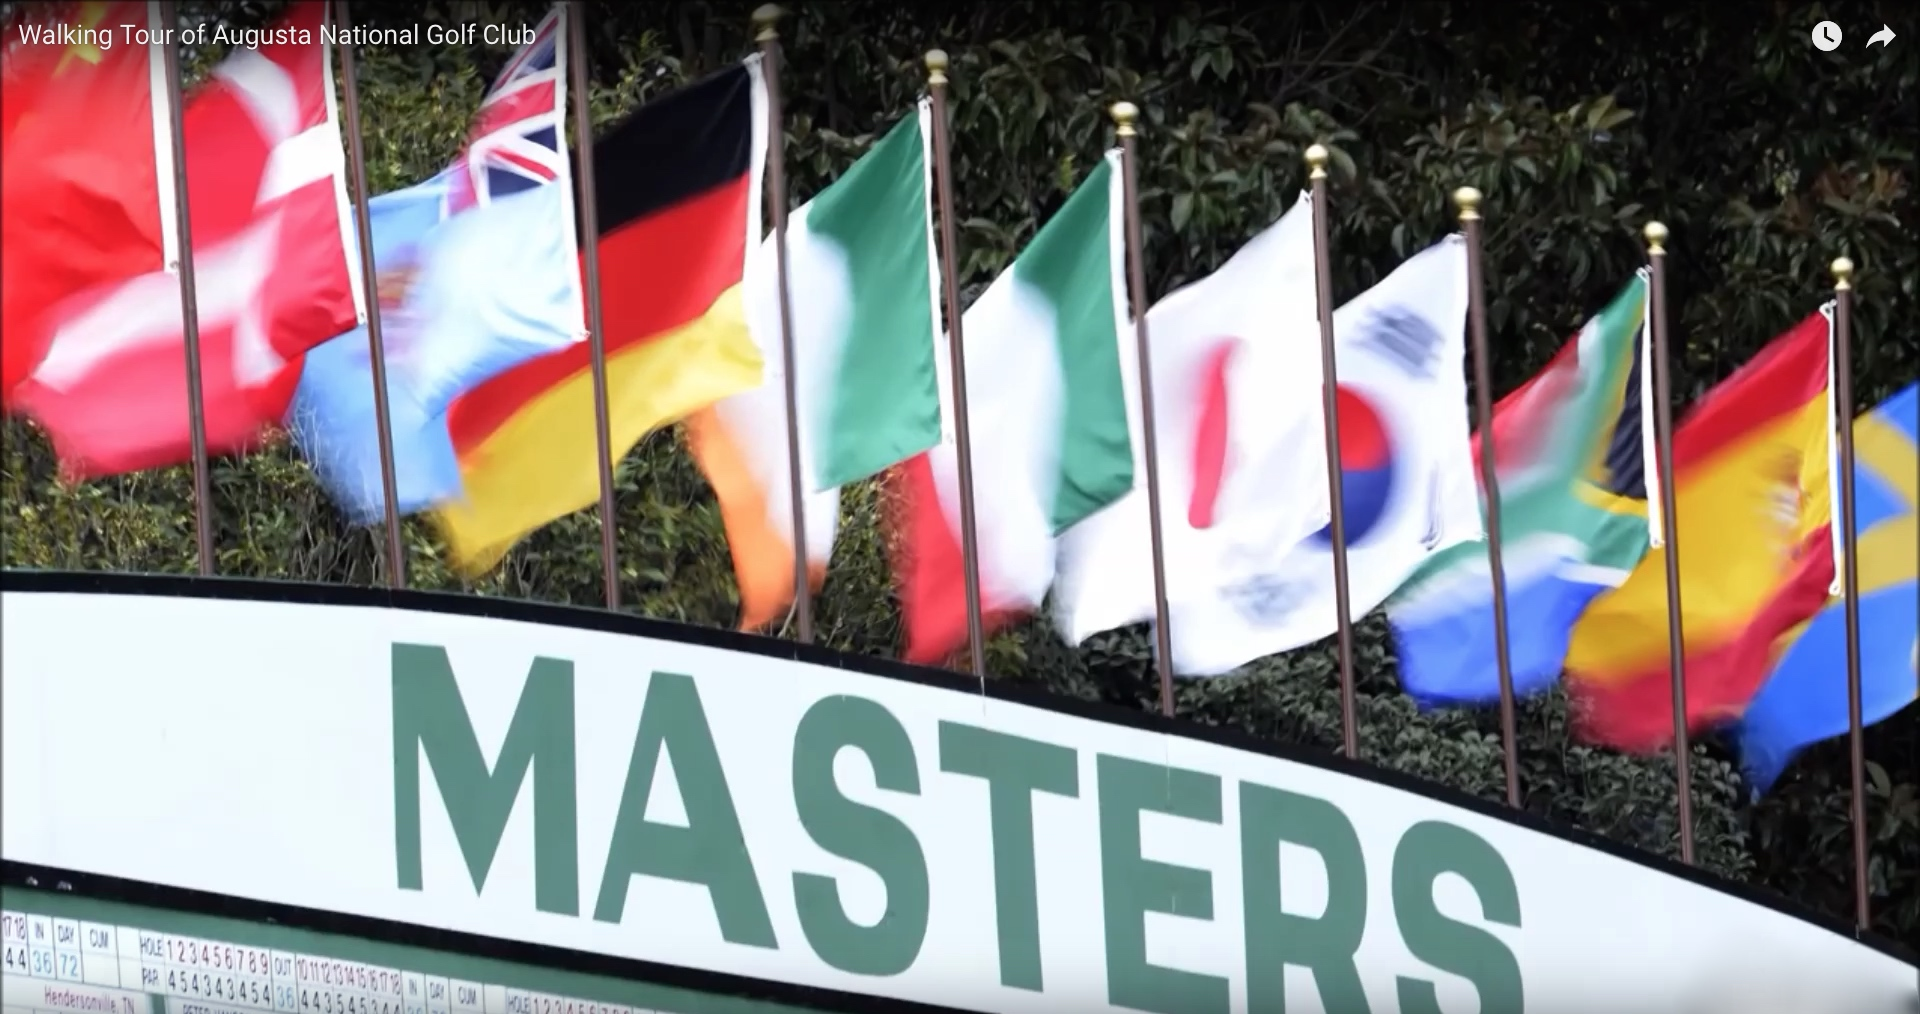 Is this the most important Masters of all time?